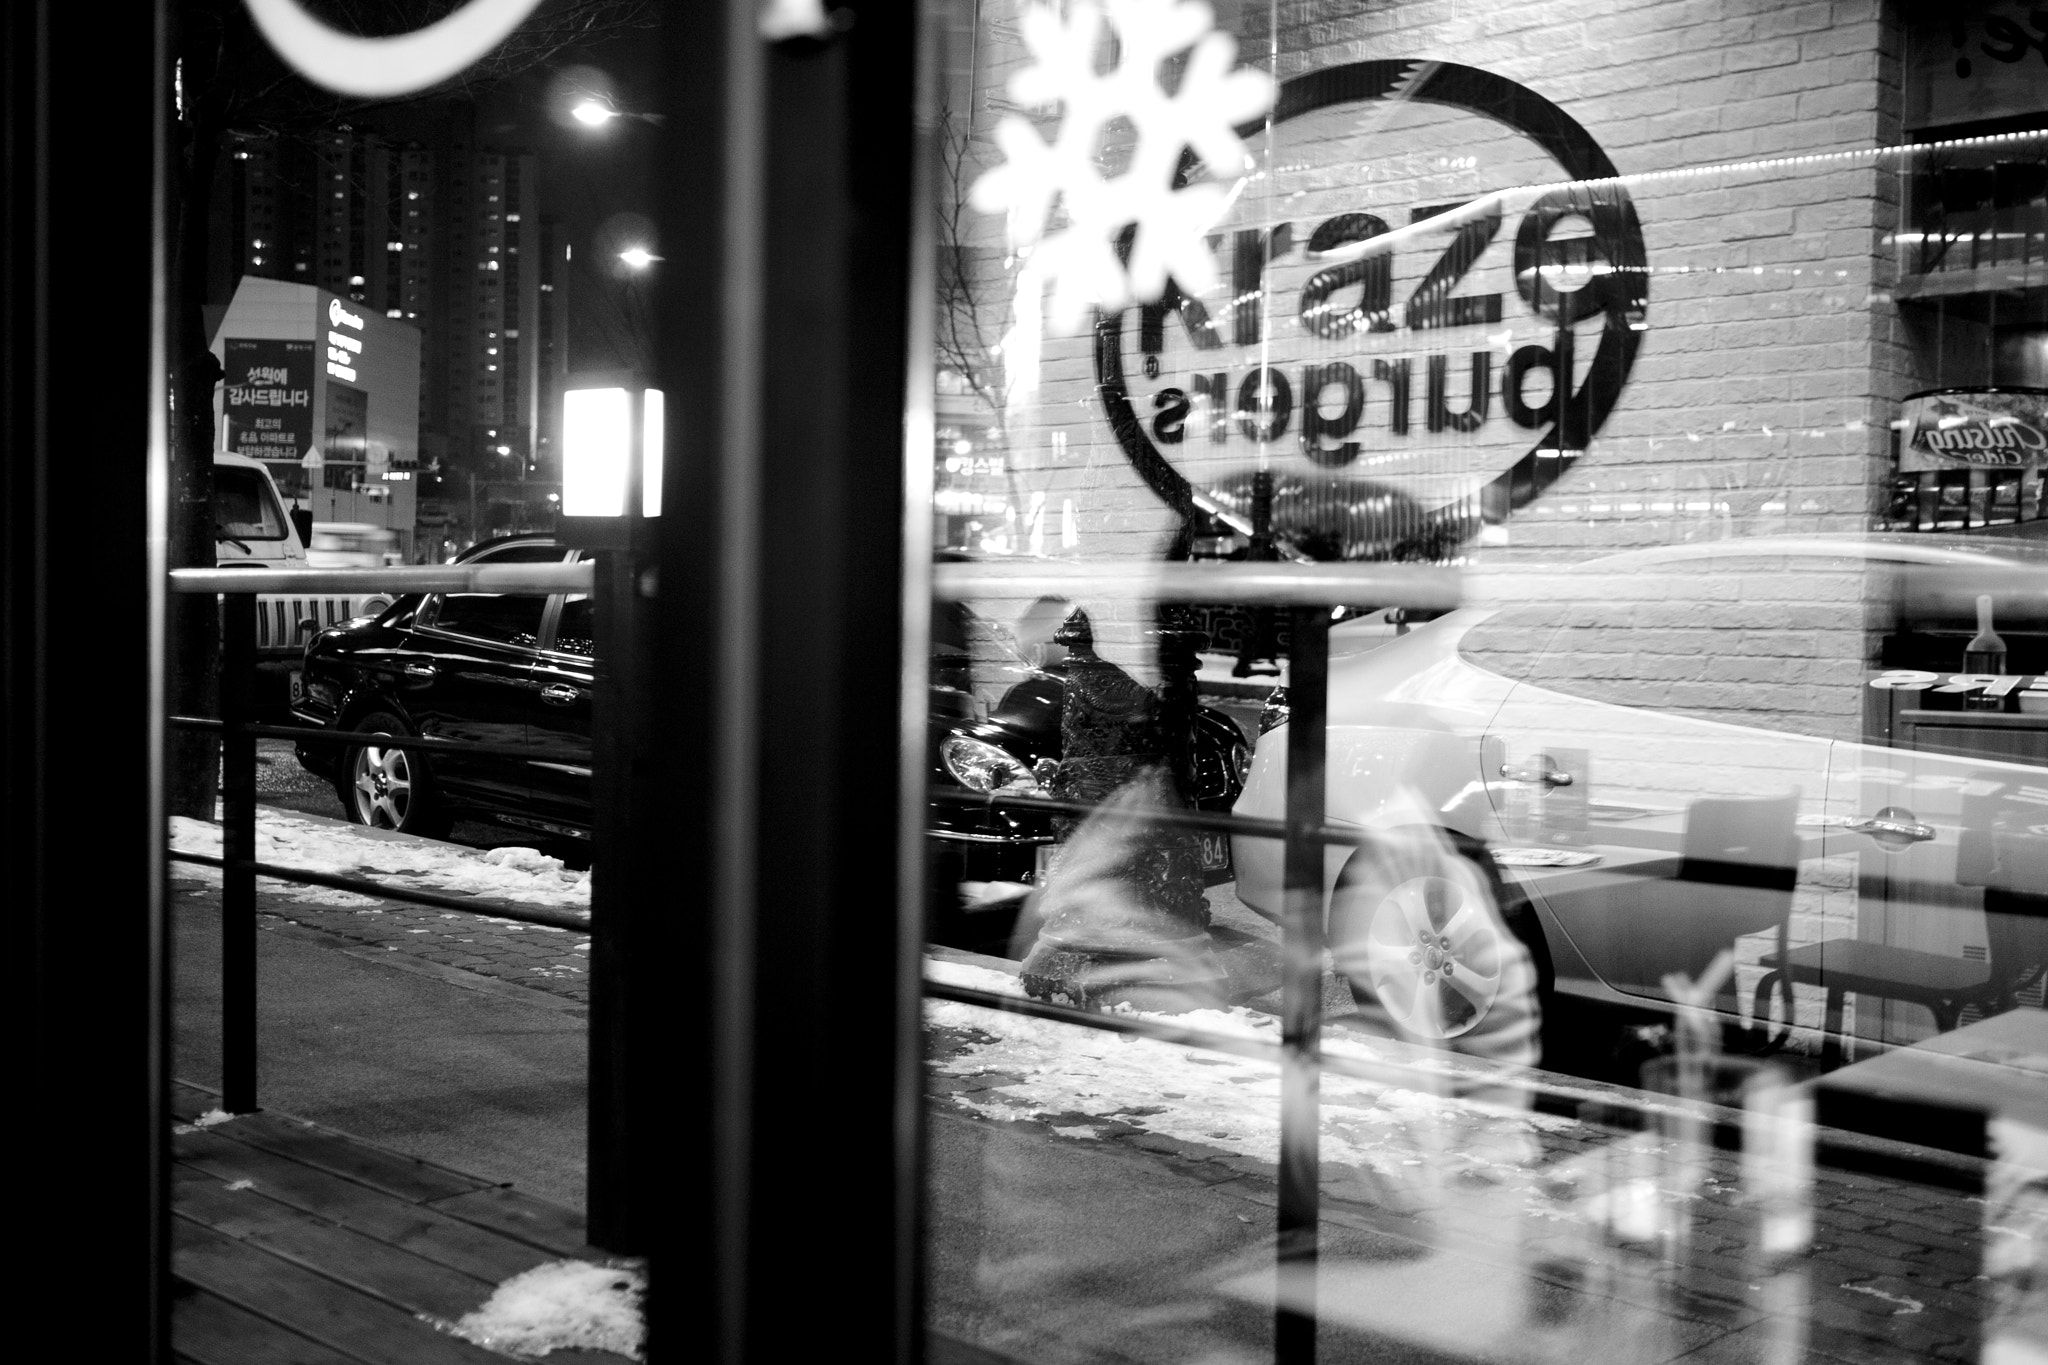 Photograph in the cafe by junyoung jang on 500px